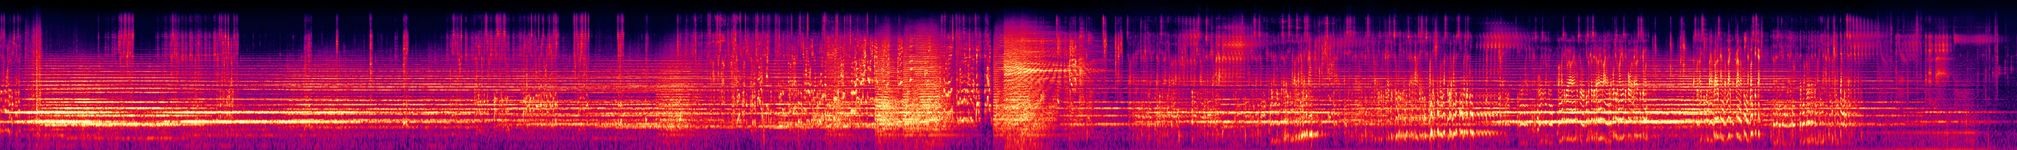 Shakespeare's Hamlet - 3rd apparition - Spectrogram.jpg